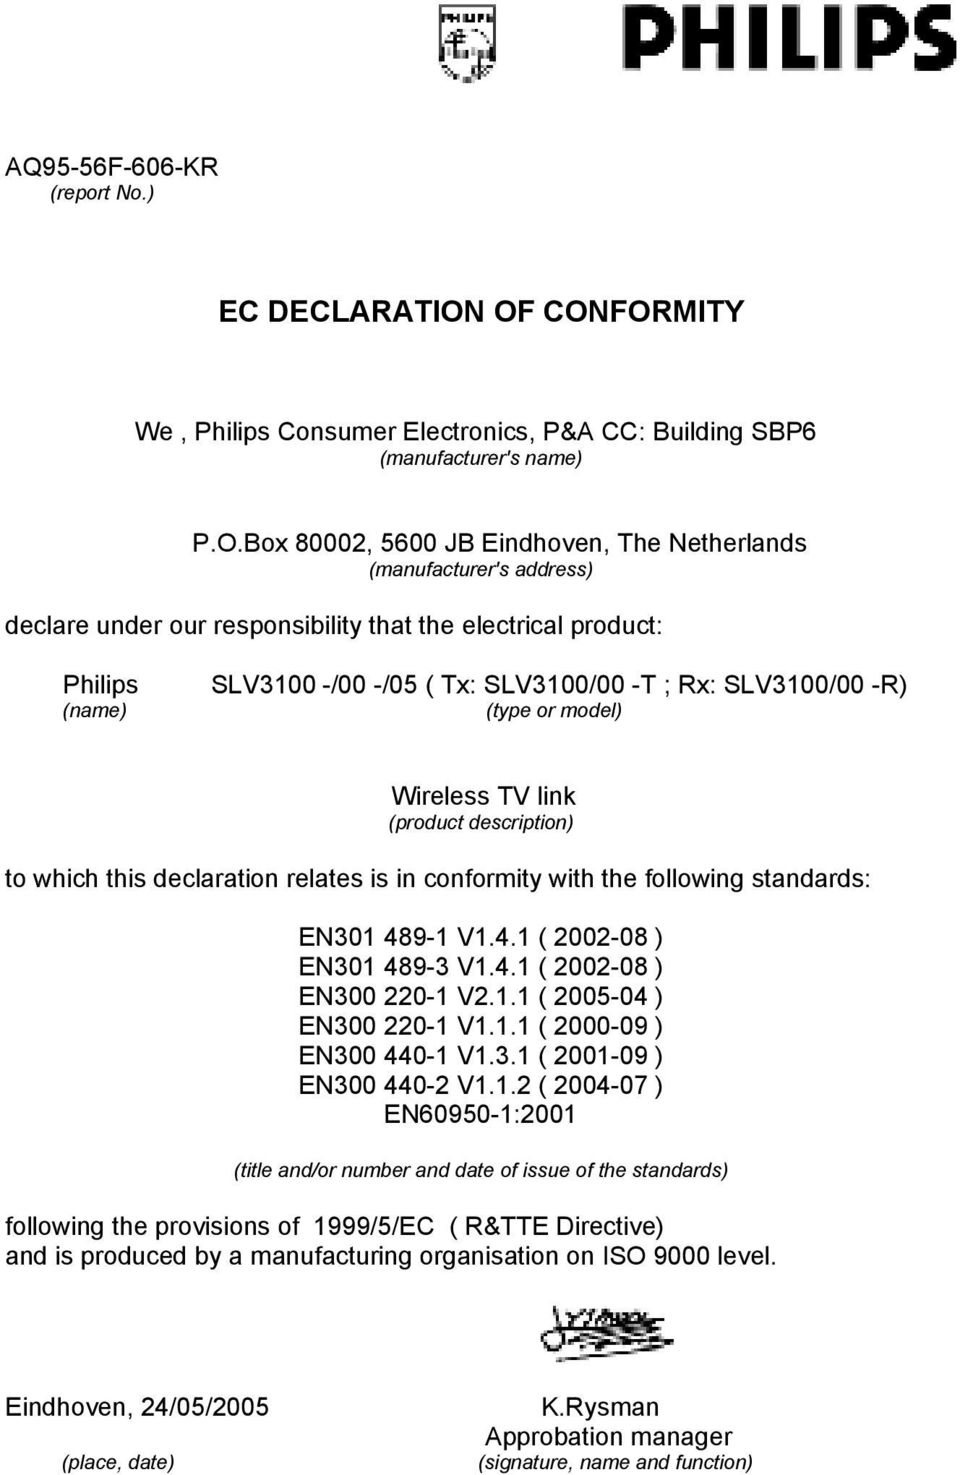 that the electrical product: Philips (name) SLV3100 -/00 -/05 ( Tx: SLV3100/00 -T ; Rx: SLV3100/00 -R) (type or model) Wireless TV link (product description) to which this declaration relates is in